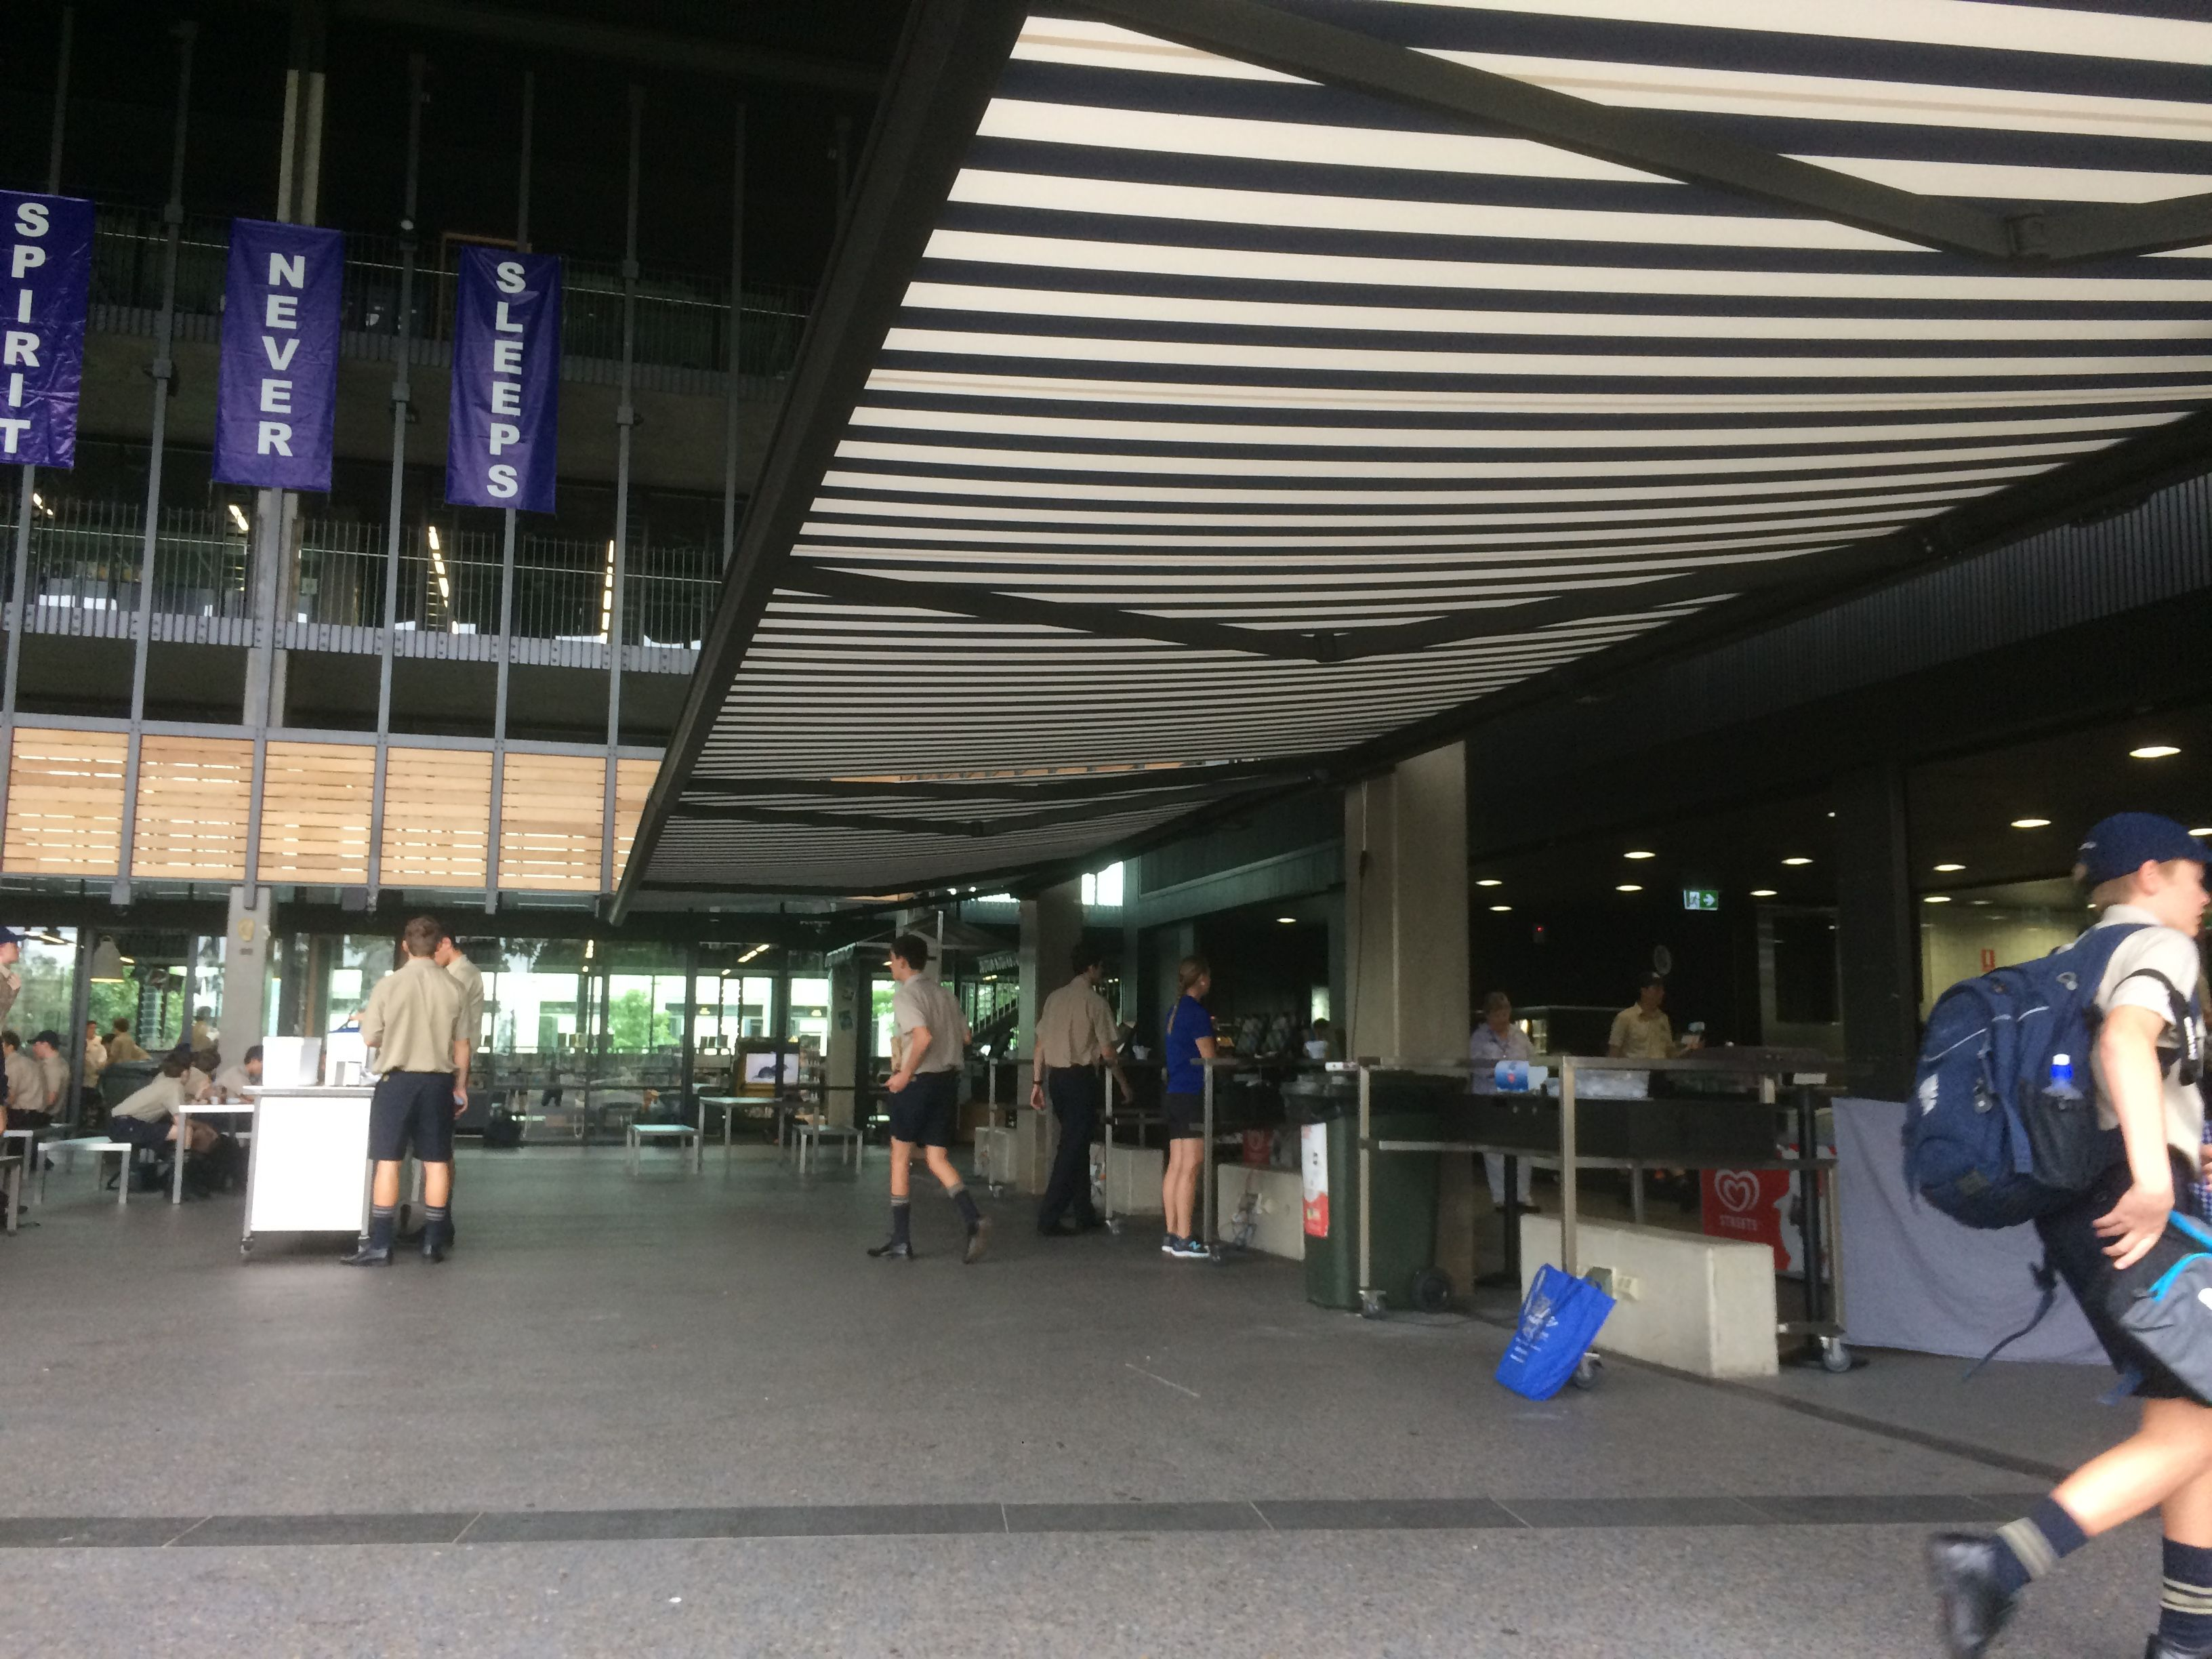 Retractable Awnings Brisbane Retractable Awning Roofing Systems Seaside Cafe